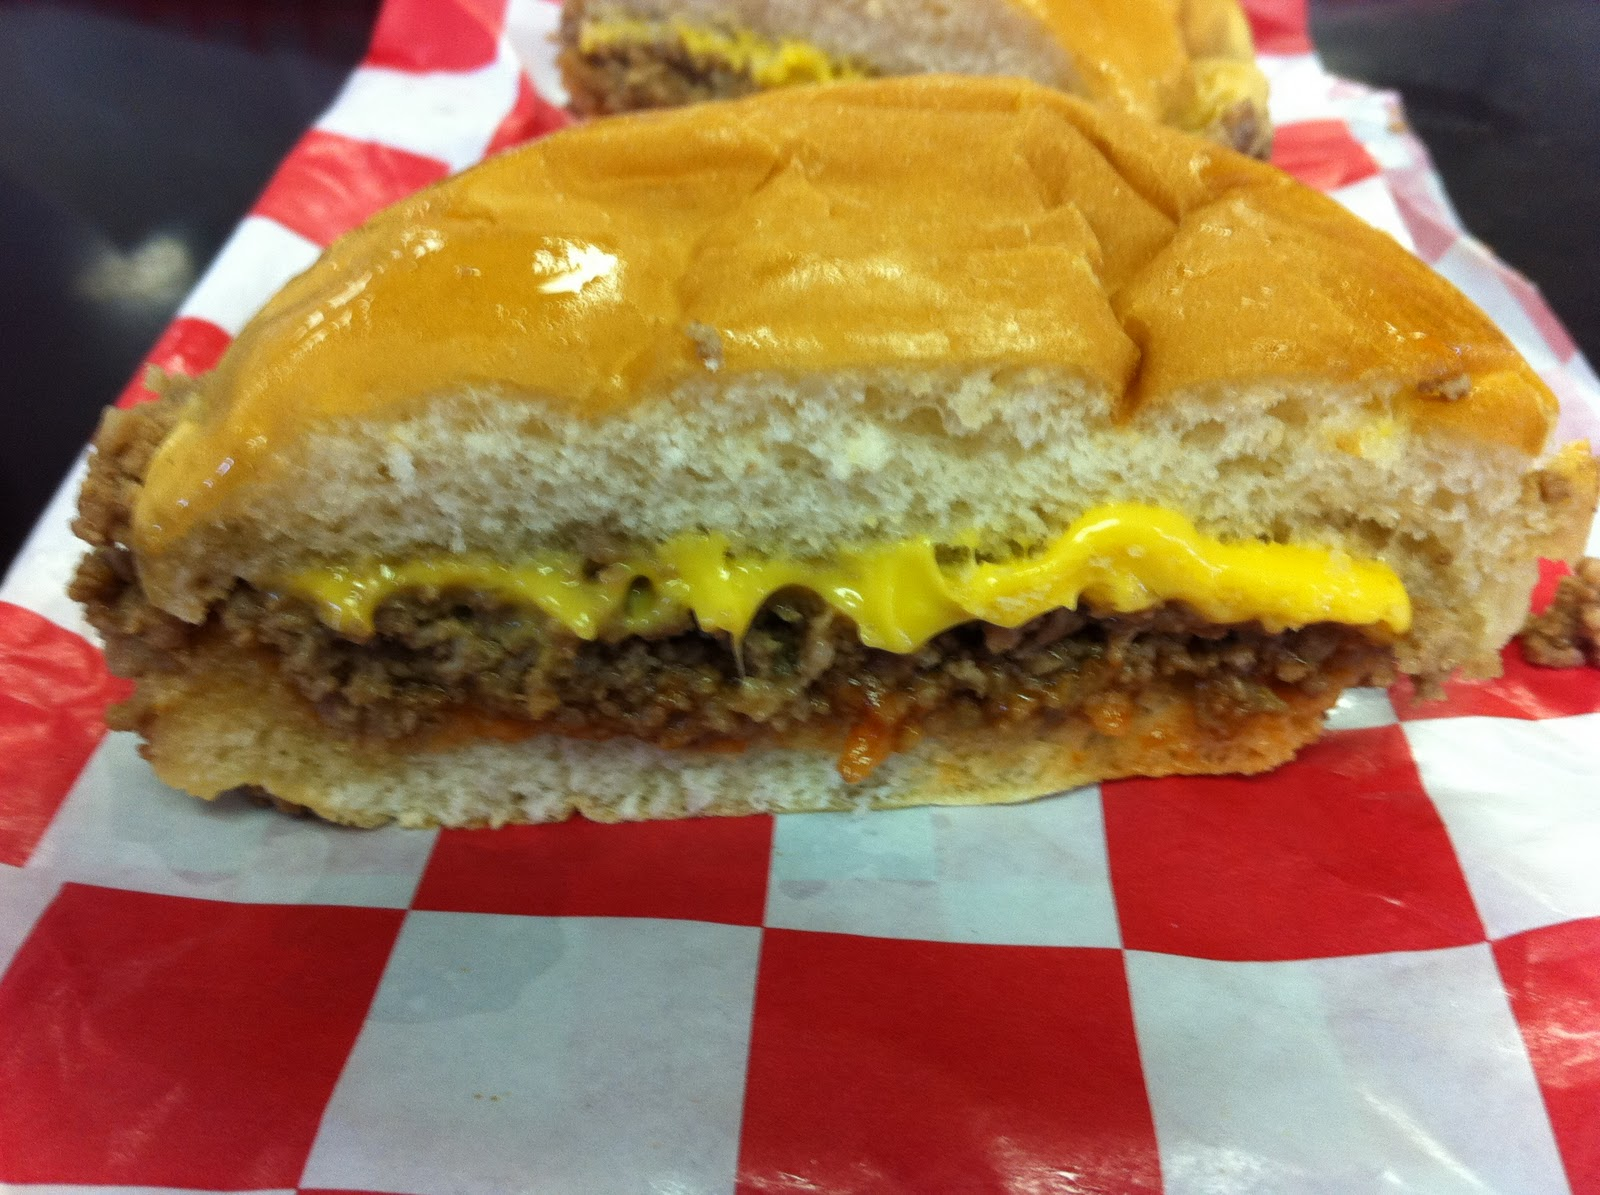 Nuway Crumbly Burgers Wichita Ks Burgers Barbecue